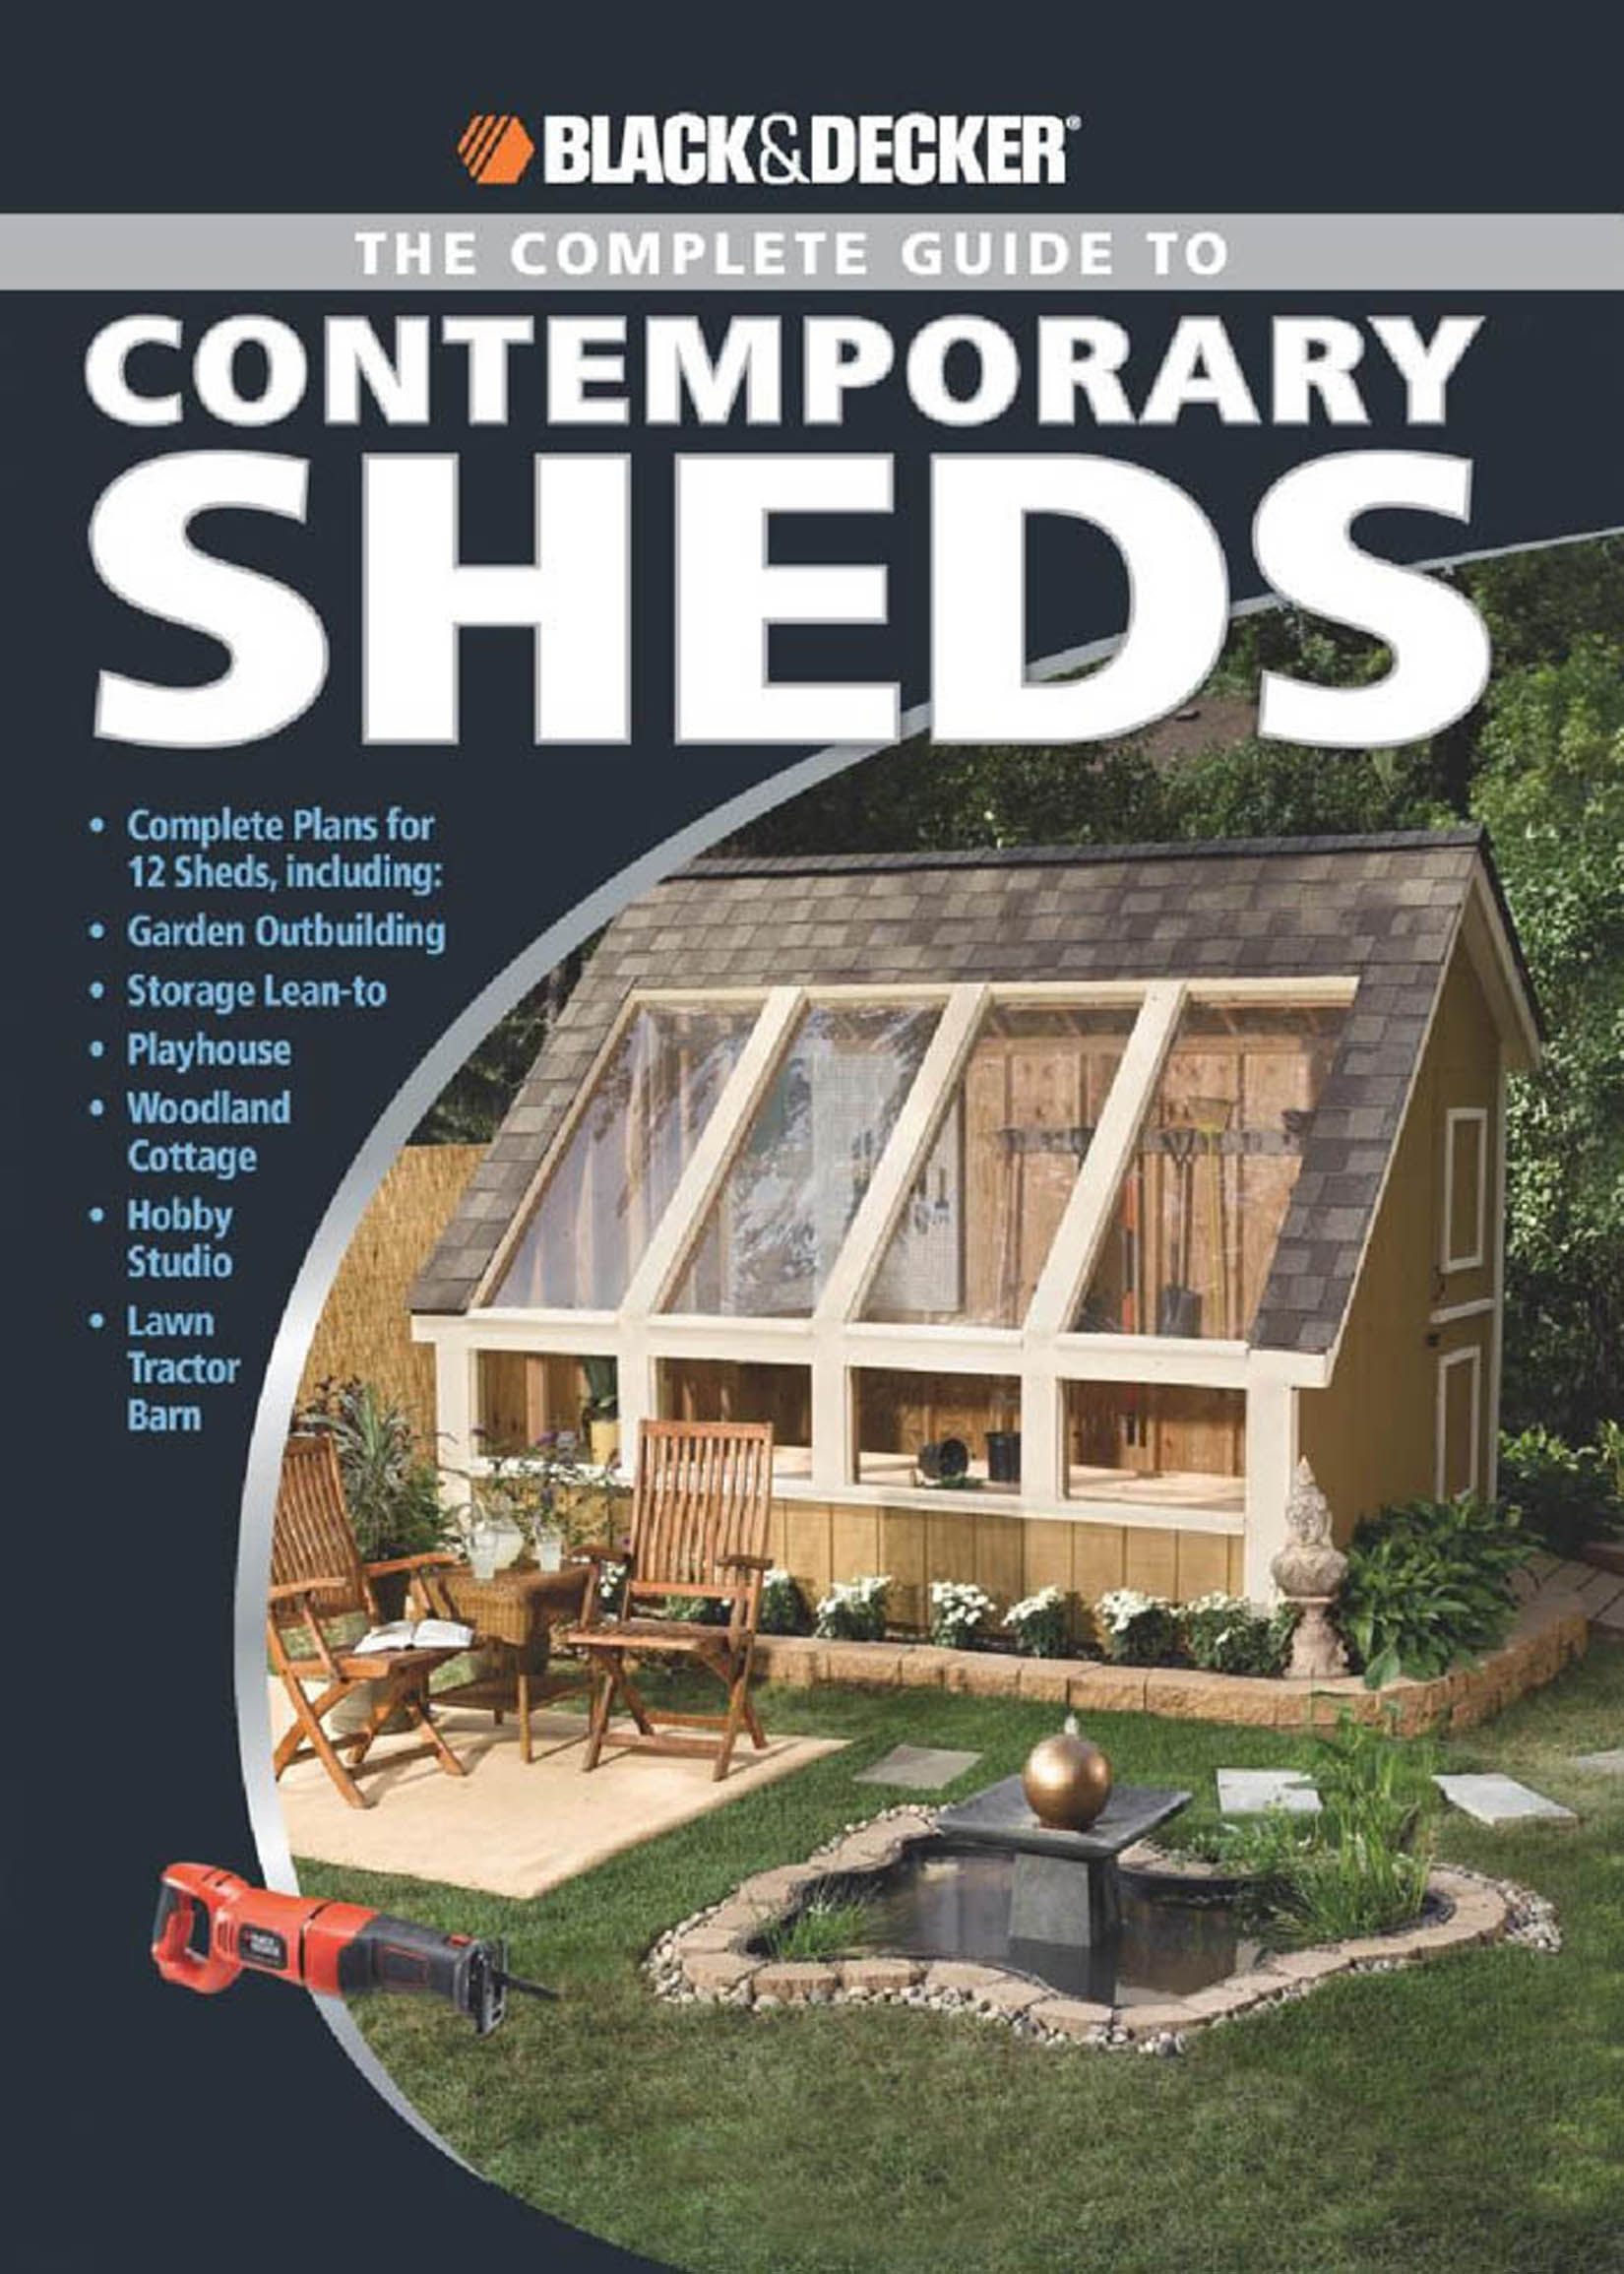 Black & Decker The Complete Guide to Contemporary Sheds: Complete plans for 12 Sheds, Including Garden Outbuilding, Storage Lean-to, Playhouse, Woodland Cott By: Philip Schmidt